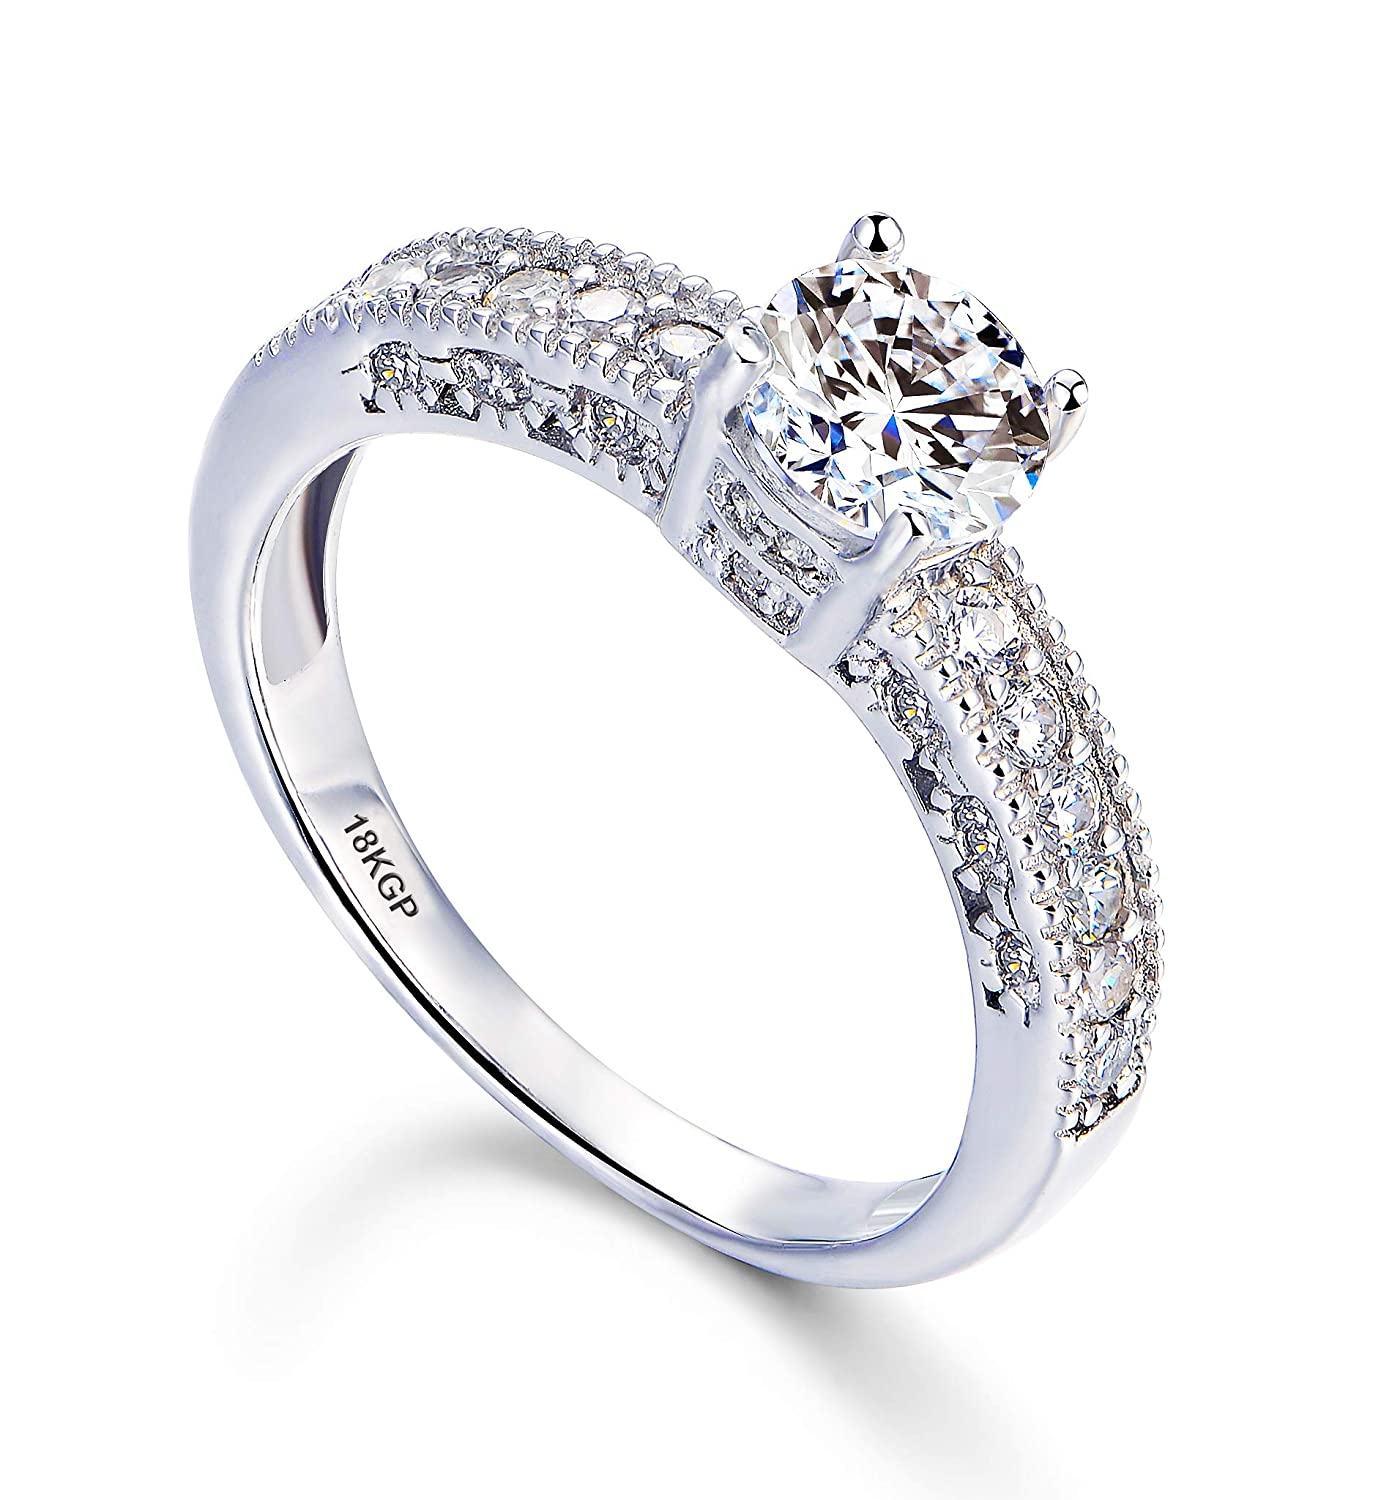 Andreangel White Gold Plated 18k 3 Microns Thickness Over Sterling Silver Solid 925 Engagement Wedding Ring Women 6 Mm 075 Carats Cubic Zirconia 5a